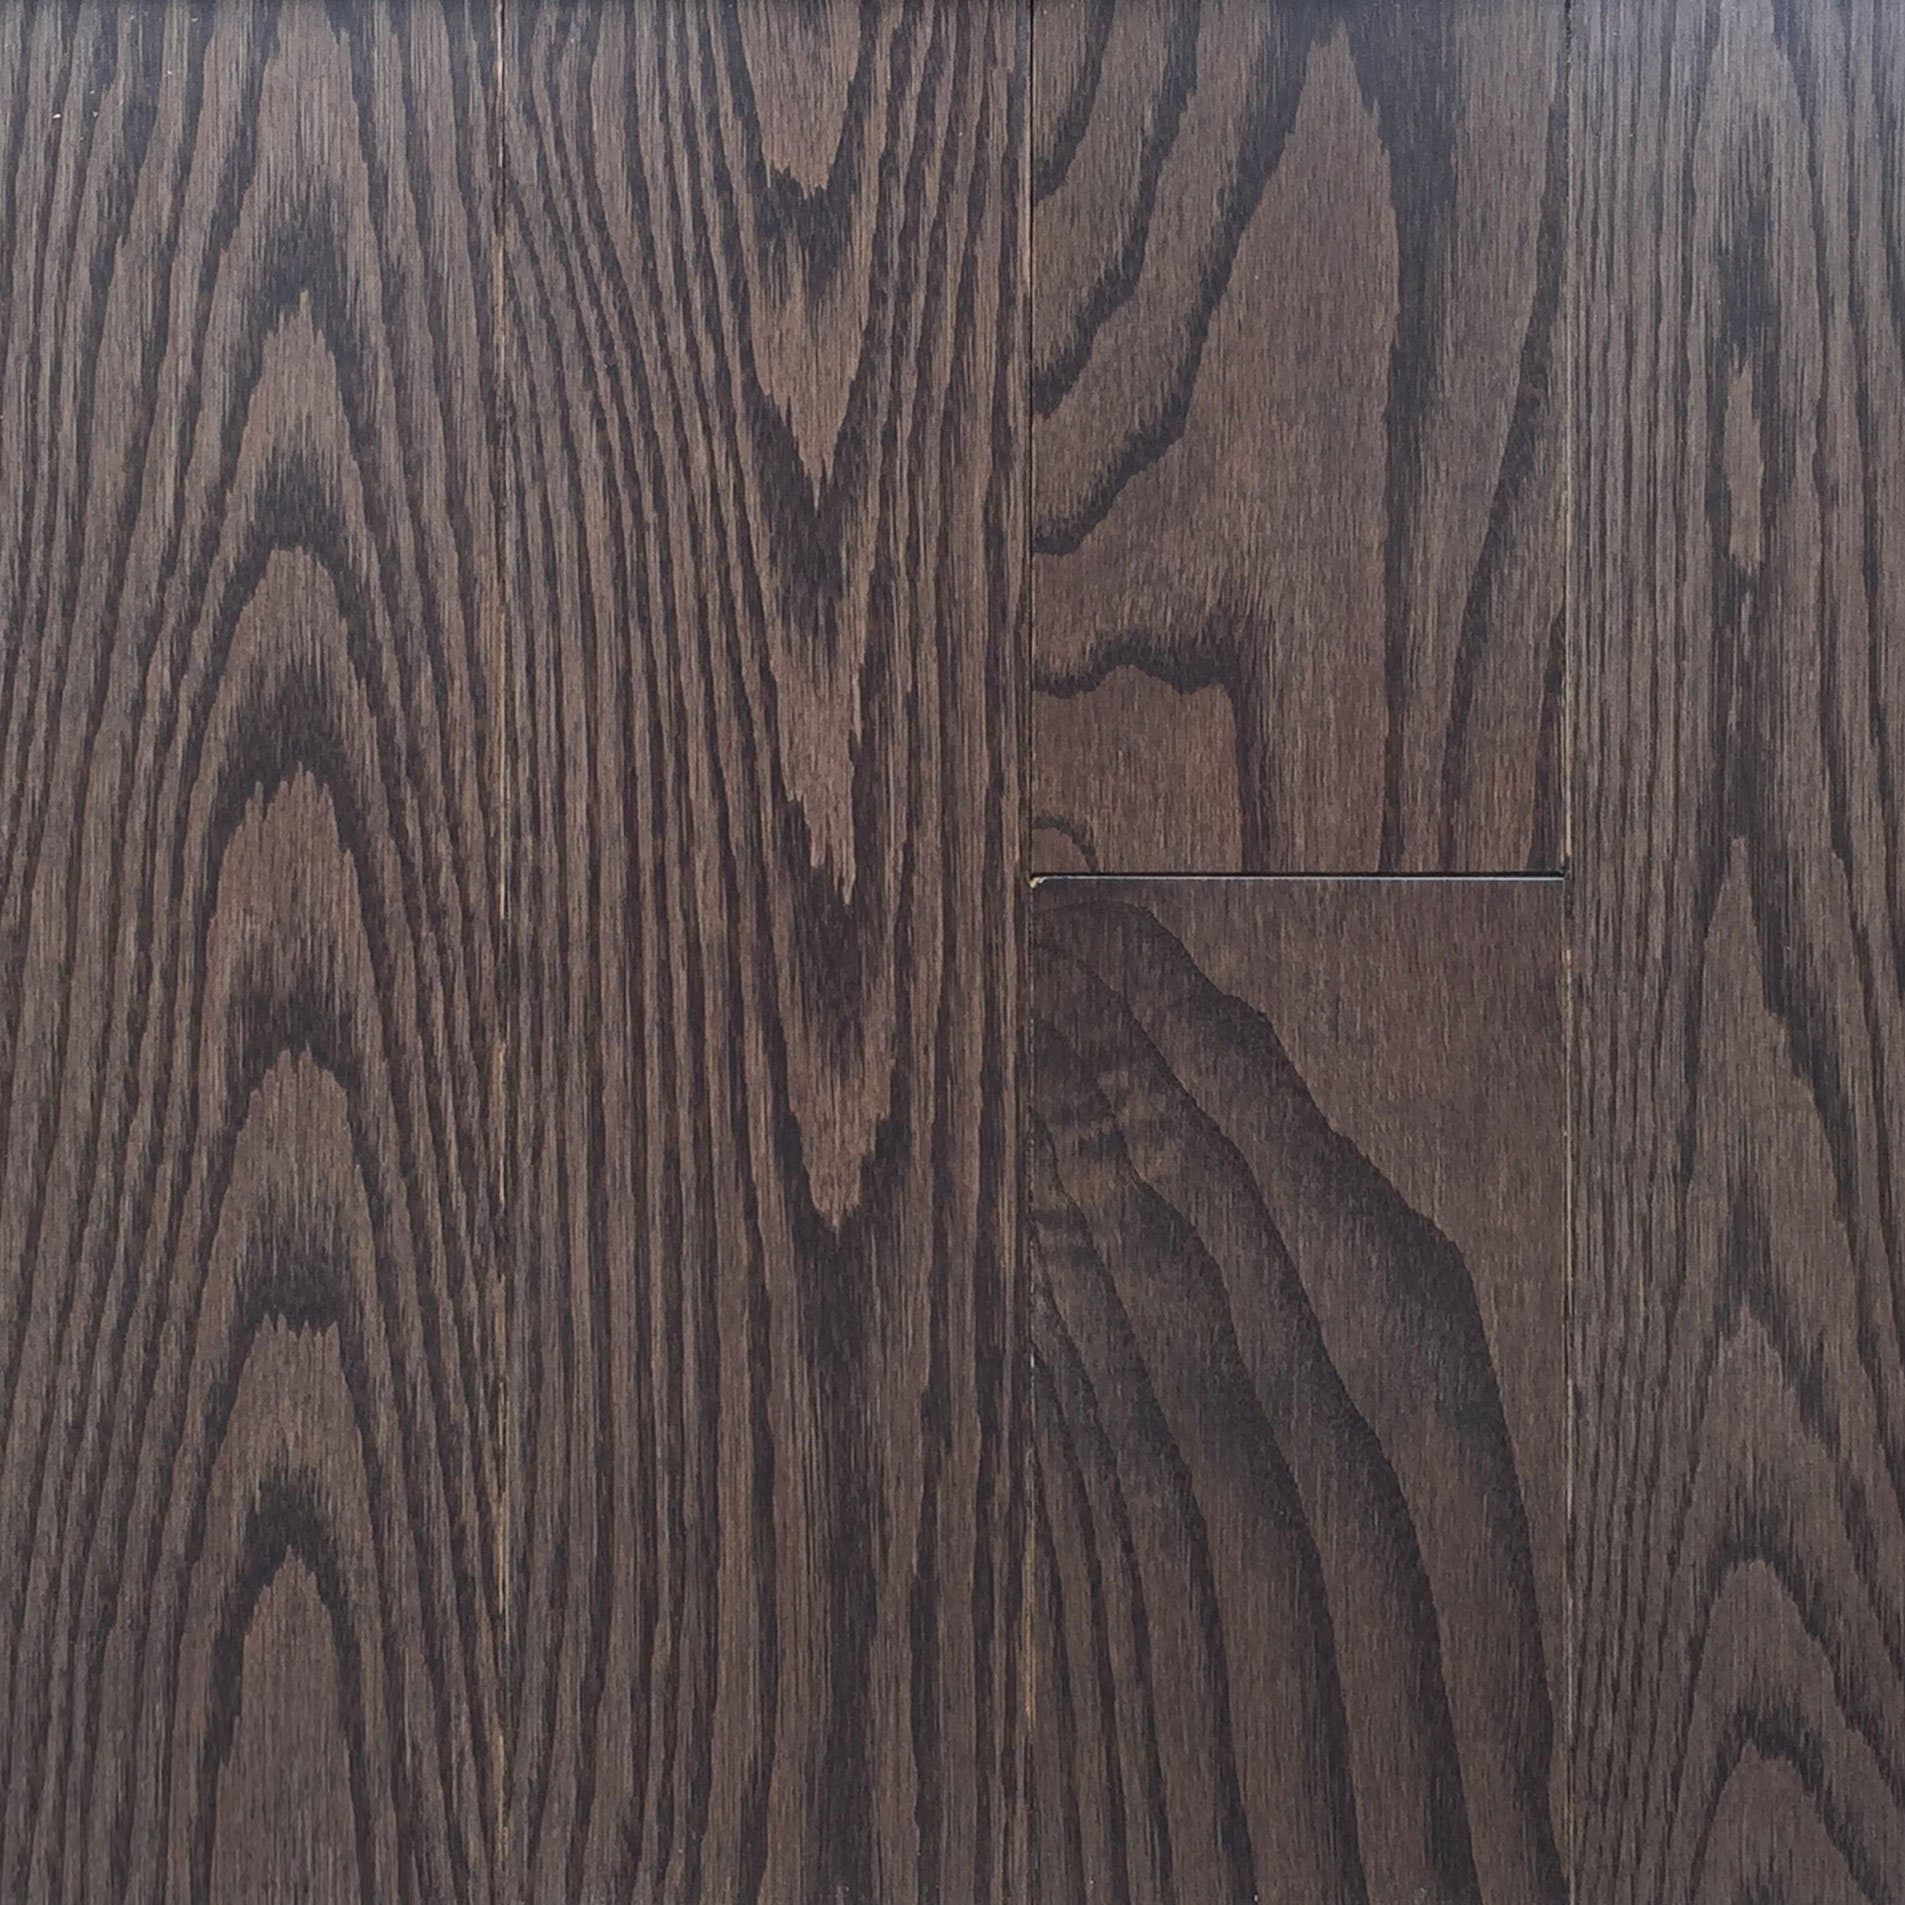 wood flooring brookdale brookdalehickory timbercraft bold hickory from lrg floors laminate pergo